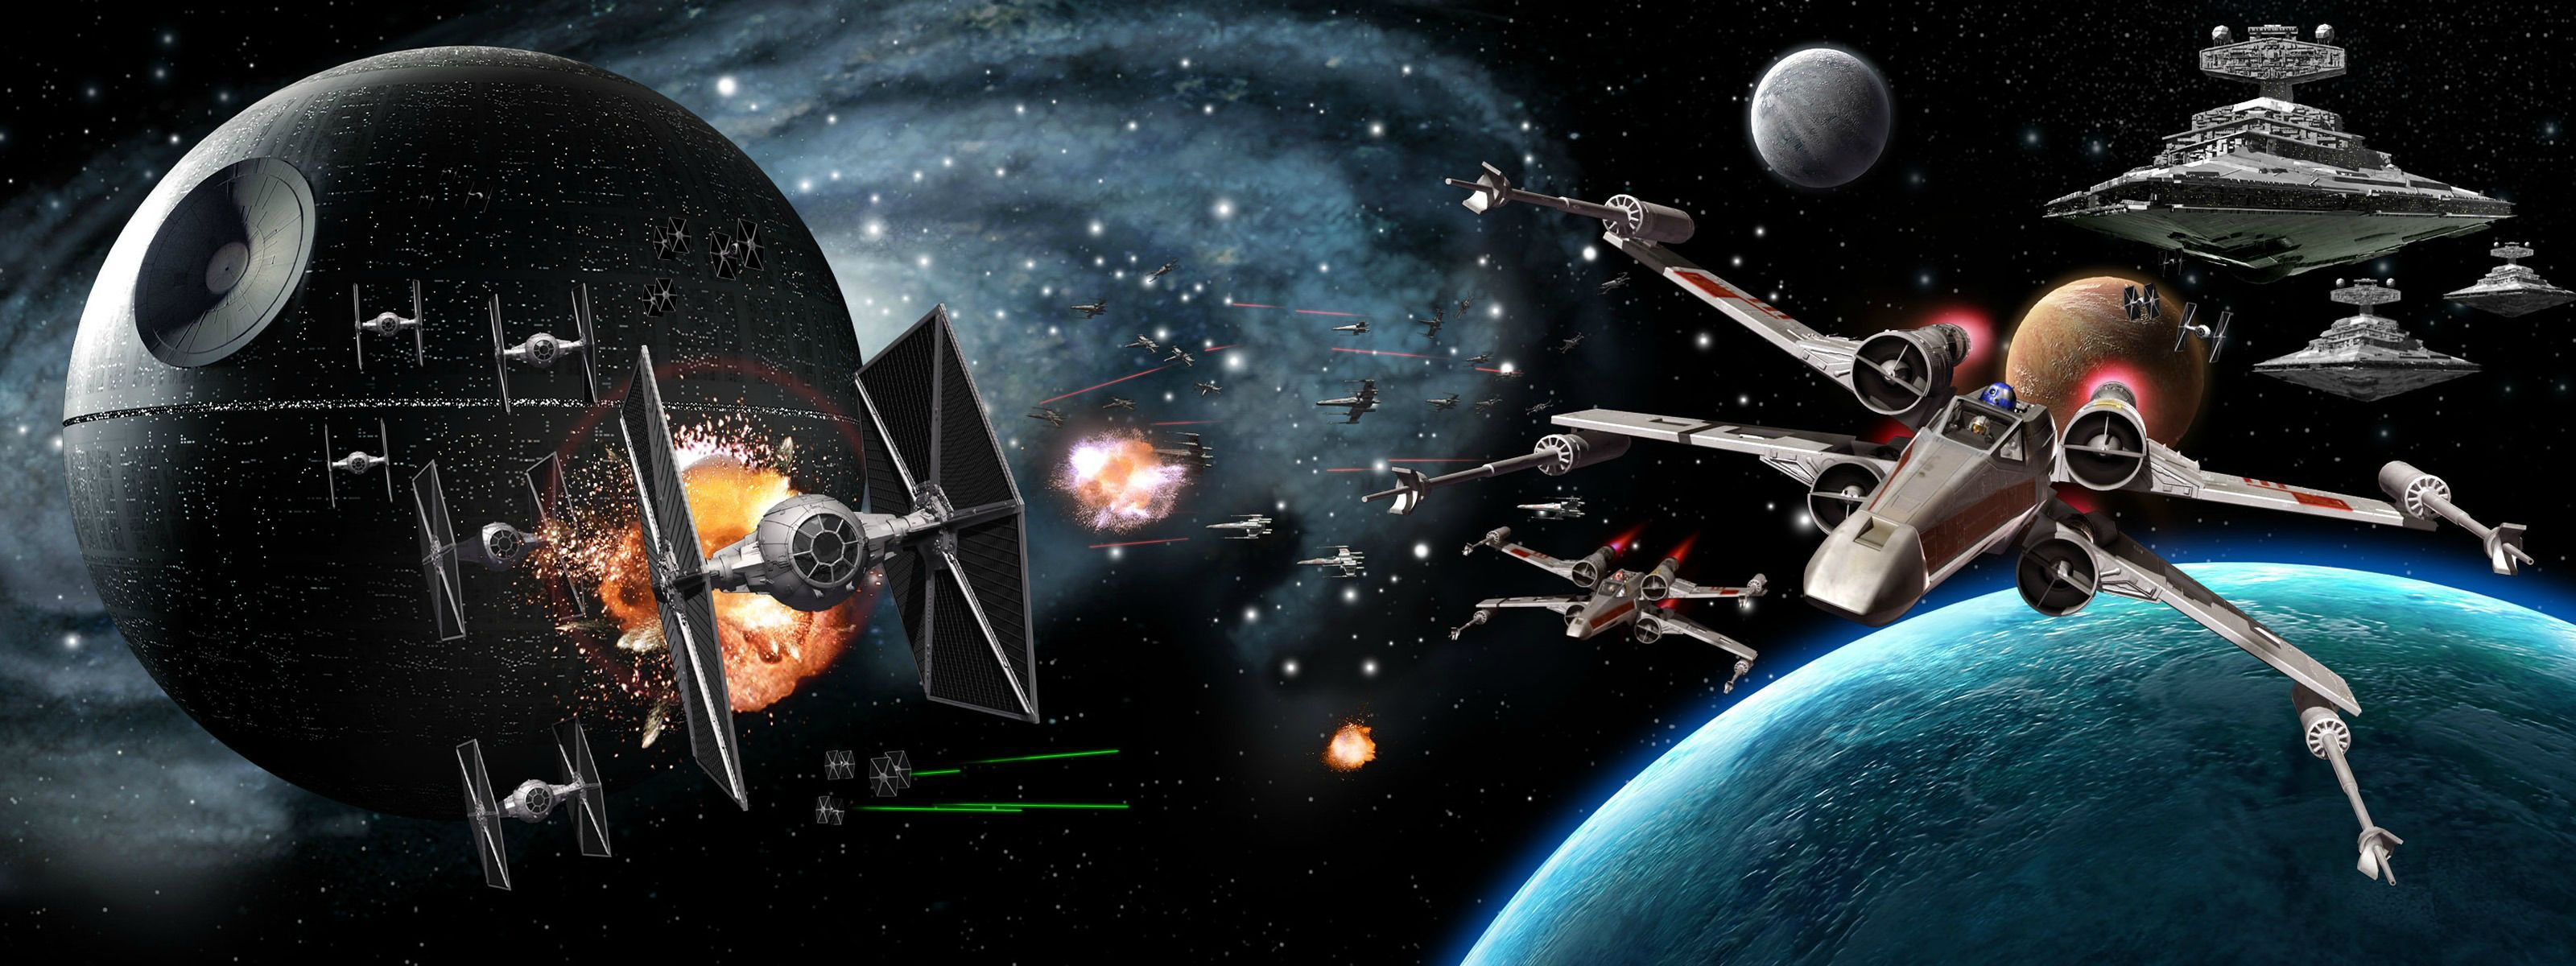 Dual screen backgrounds Star Wars Star wars wallpaper Star 3200x1200